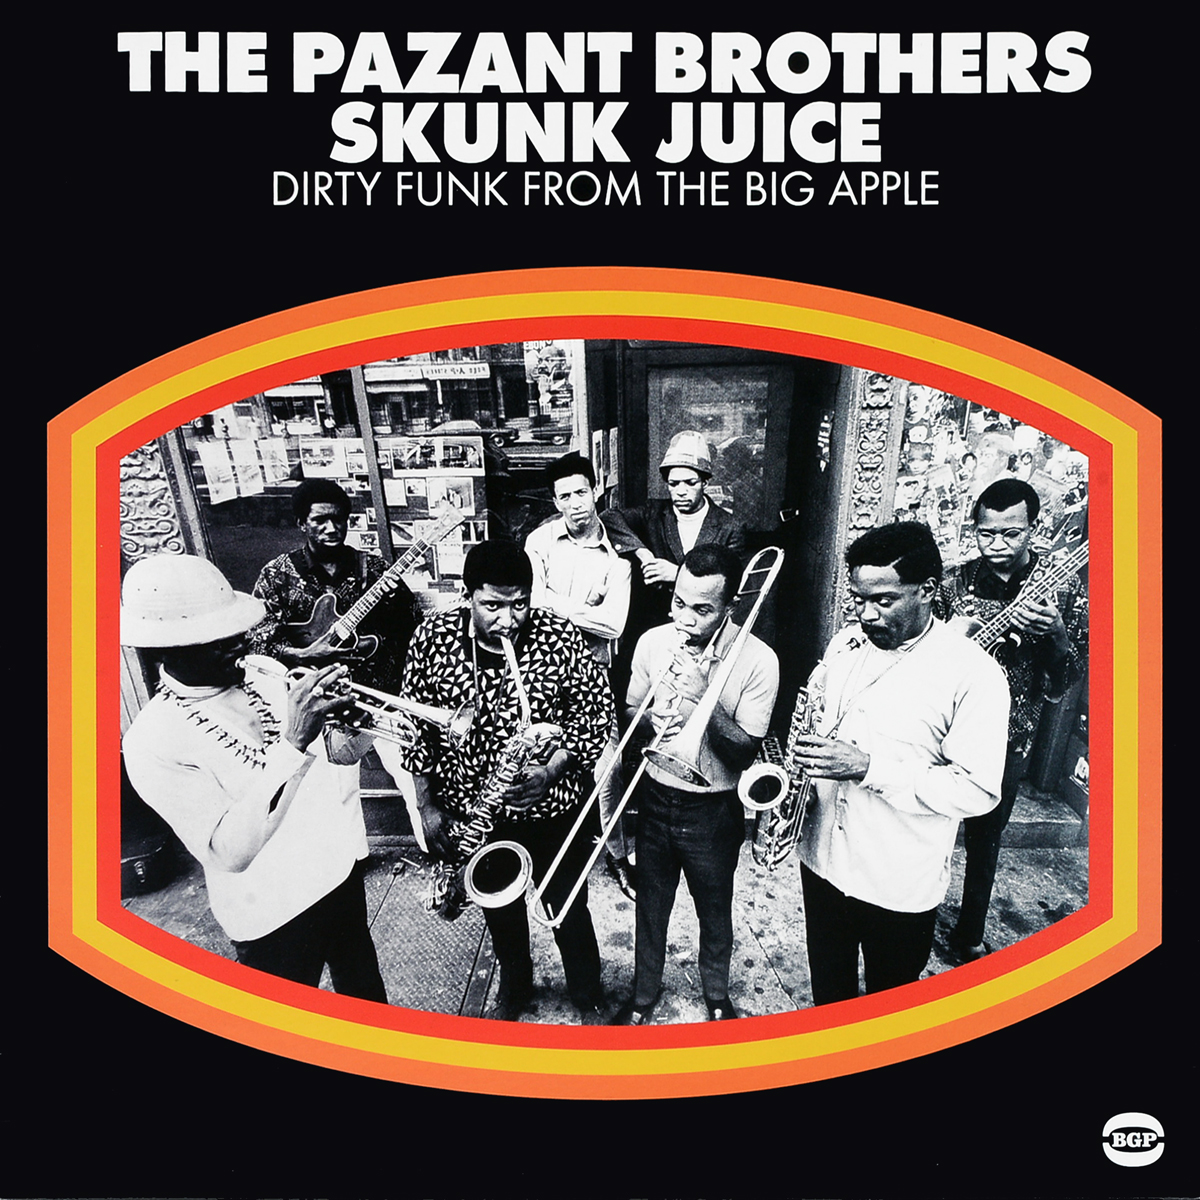 The Pazant Brothers Pazant Brothers. Skunk Juice: Dirty Funk From The Big Apple (LP) fruit crusher portable pulper apple scratter cider wine juice press shredder